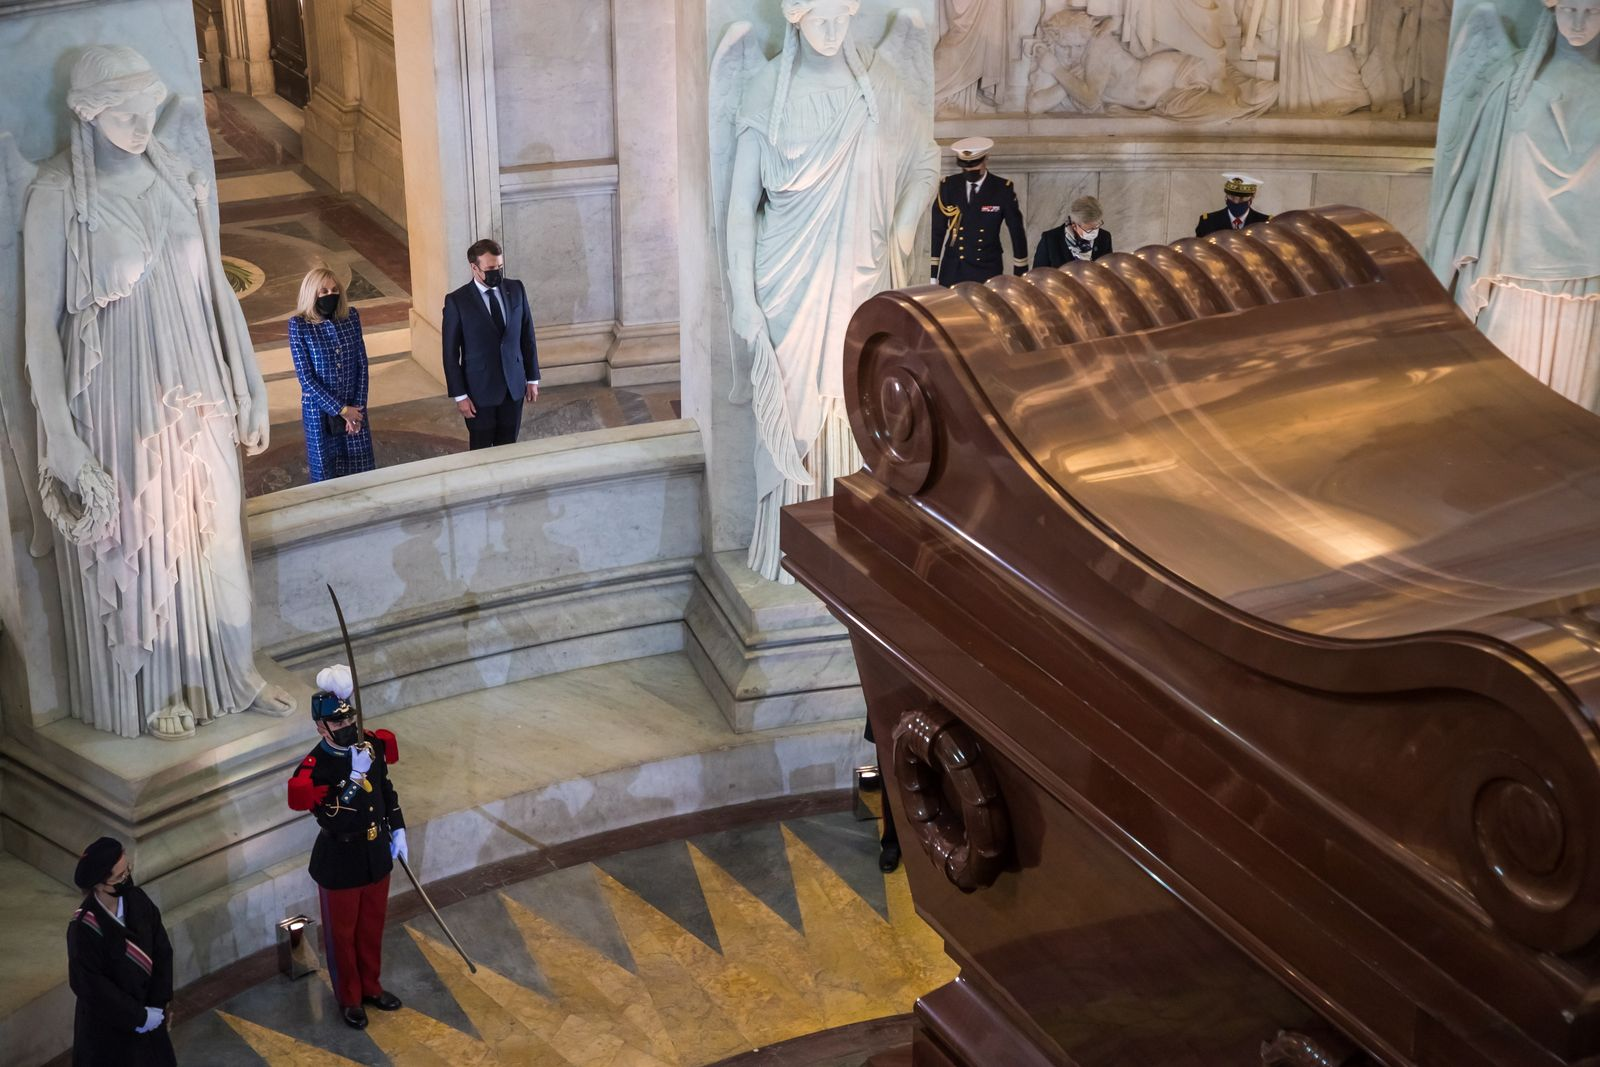 French President Macron attends a ceremony for the bicentennial of Napoleon's death in Paris